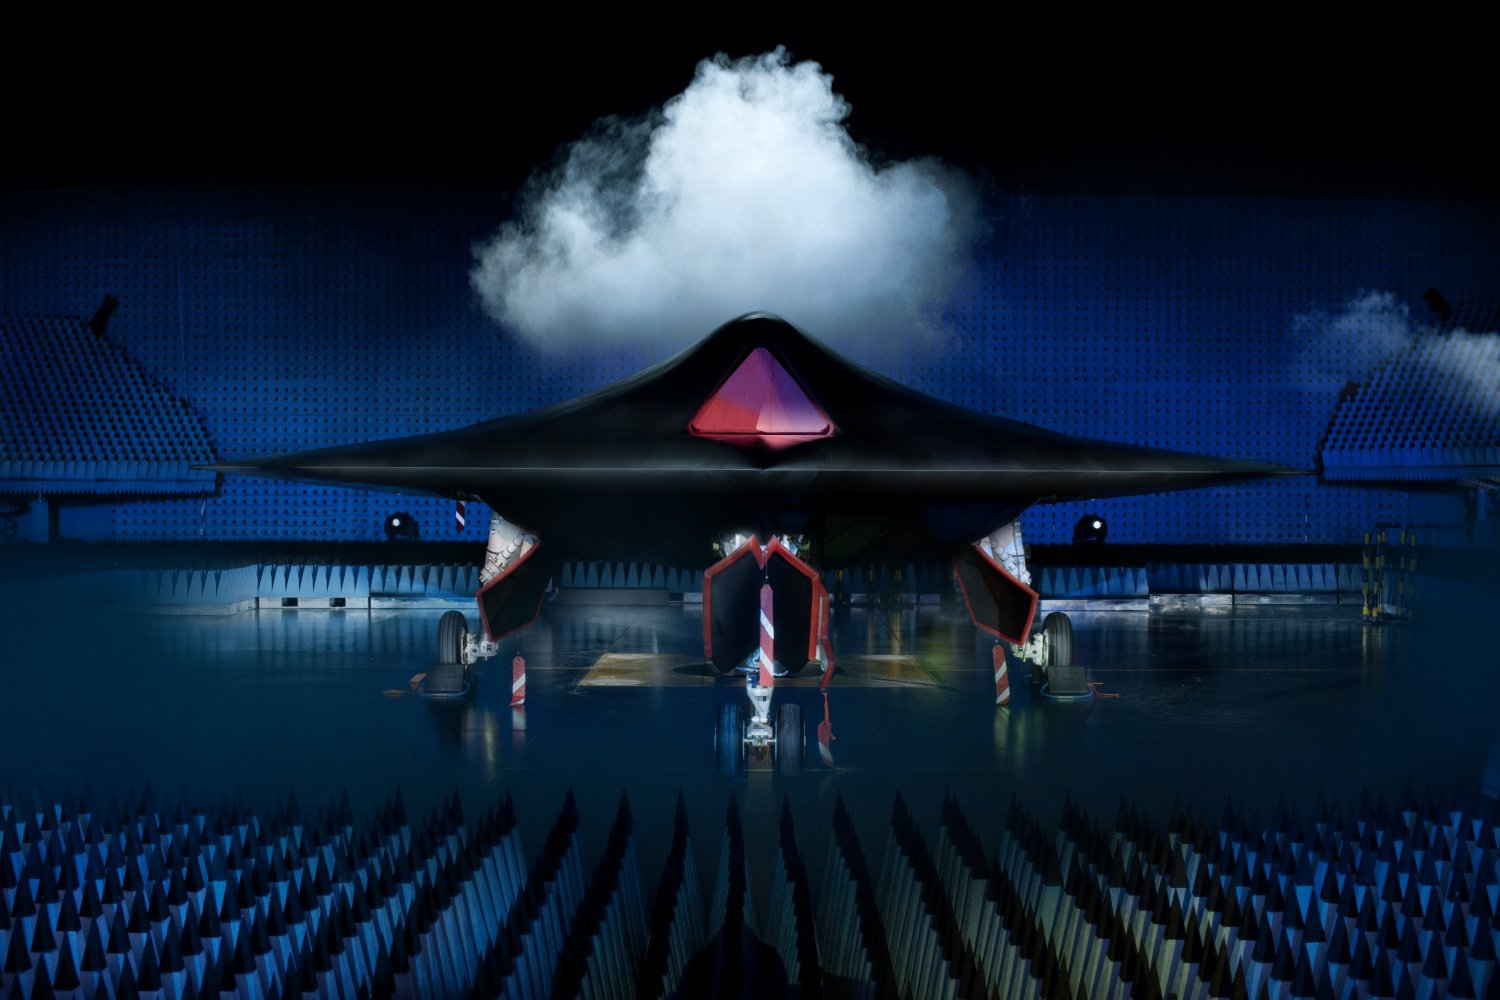 <!--:en-->BAE Taranis UCAV (Unmanned Combat Air Vehicle): Meet the New Jet-Powered, Weaponized, Low-Observable, and Autonomous God of Thunder<!--:-->